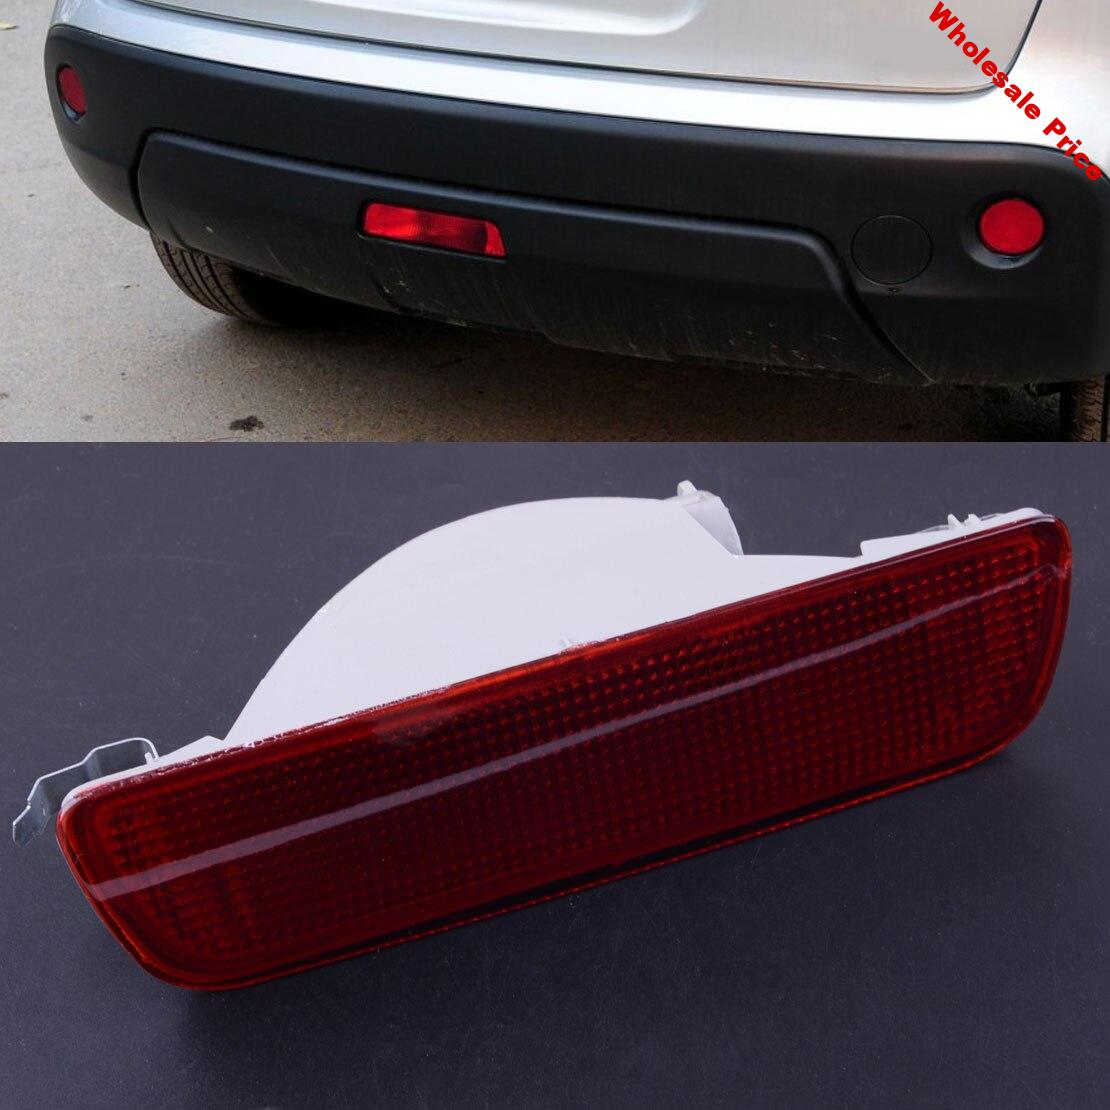 Red Rear Tail Central Bumper Reflector Fog Lamp Reverse Brake Lights Lamp Fit For Nissan Qashqai 2007 2008 2009 2011 2012 2013